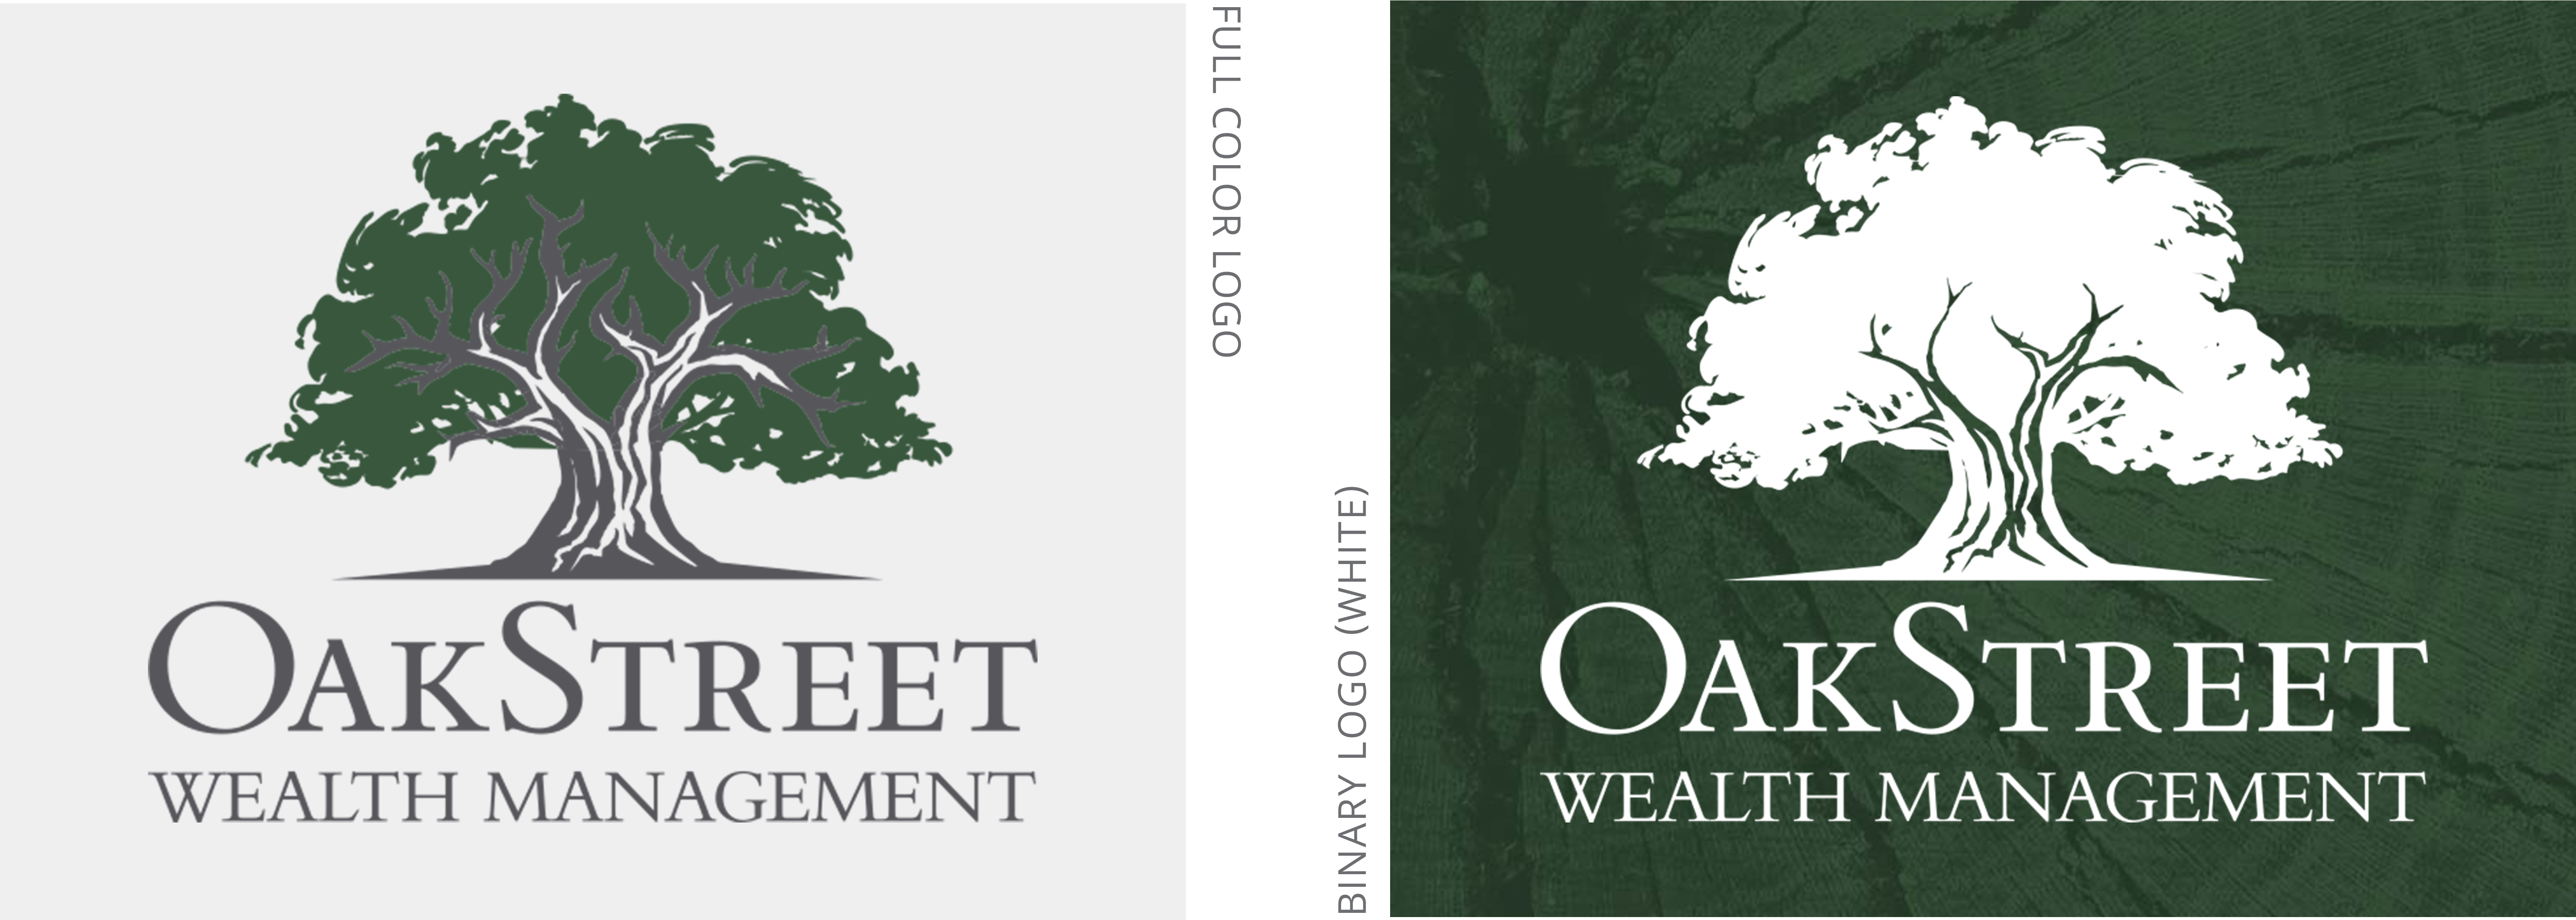 Oakstreet logo set, including full color and binary color versions